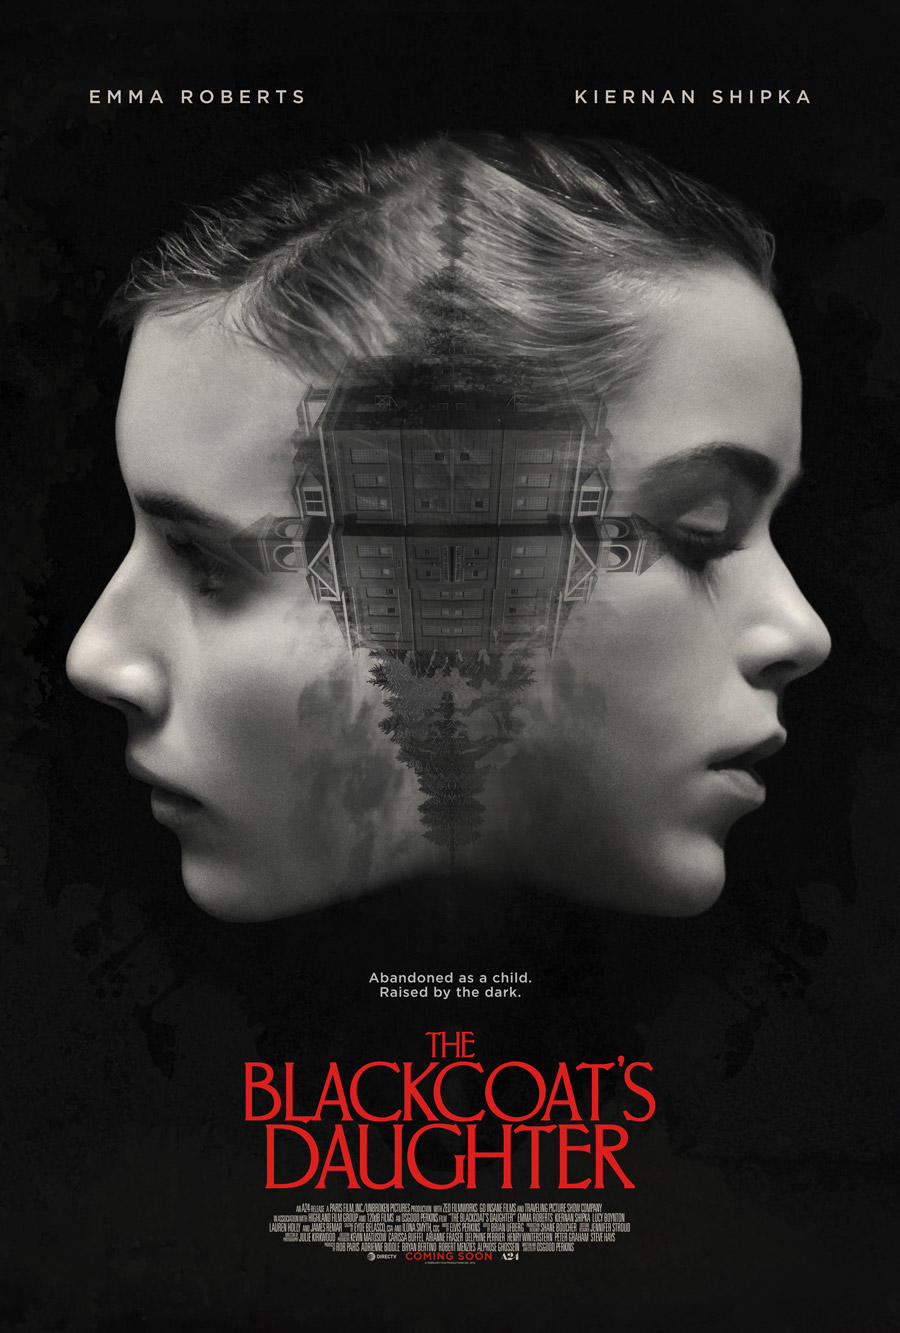 The Blackcoat's Daughter poster art